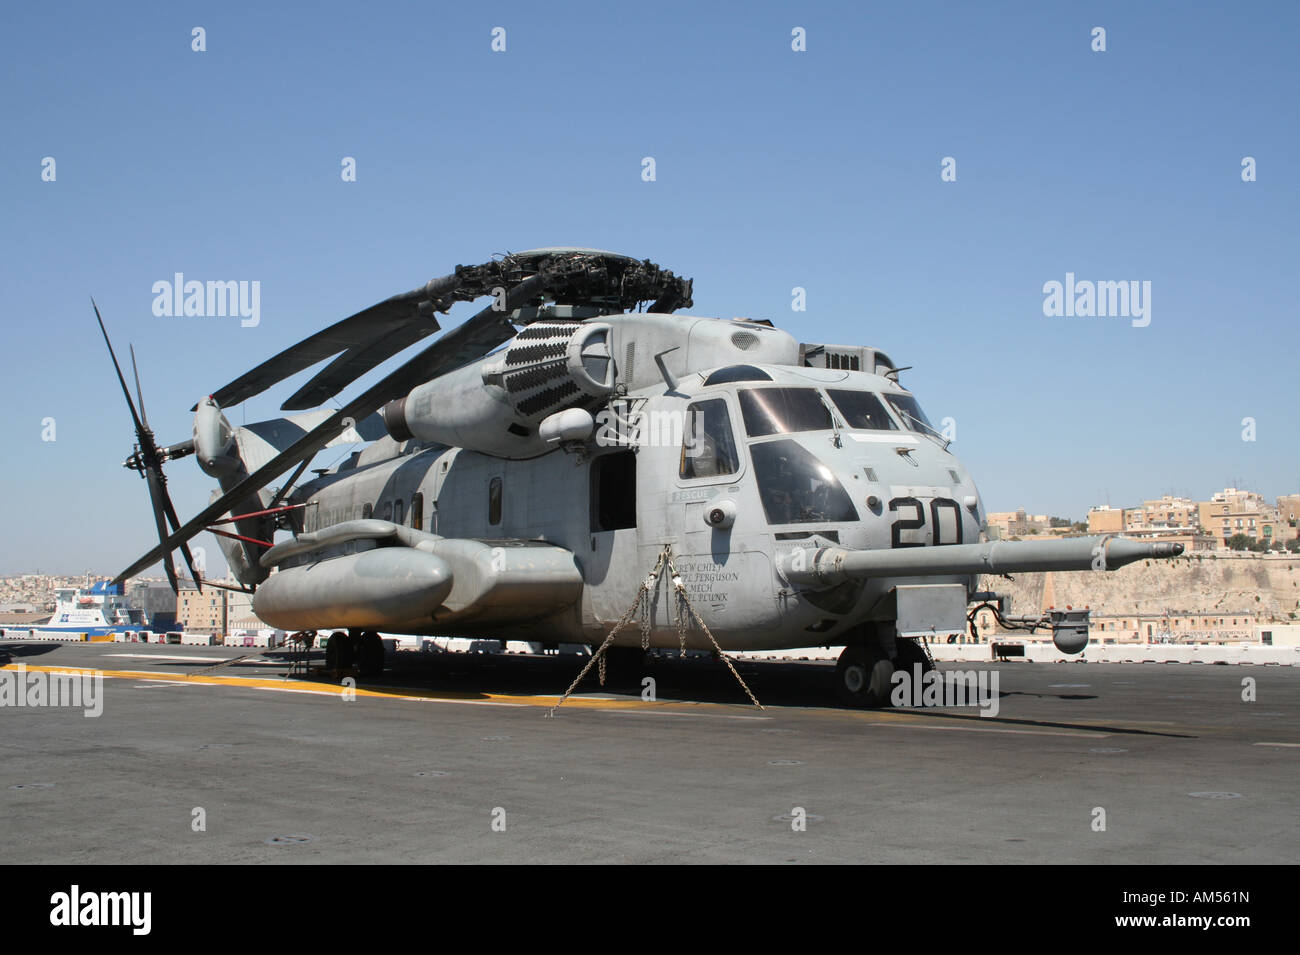 A Sikorsky CH-53E Super Stallion helicopter operated by the US Marines on board the amphibious assault ship USS - Stock Image